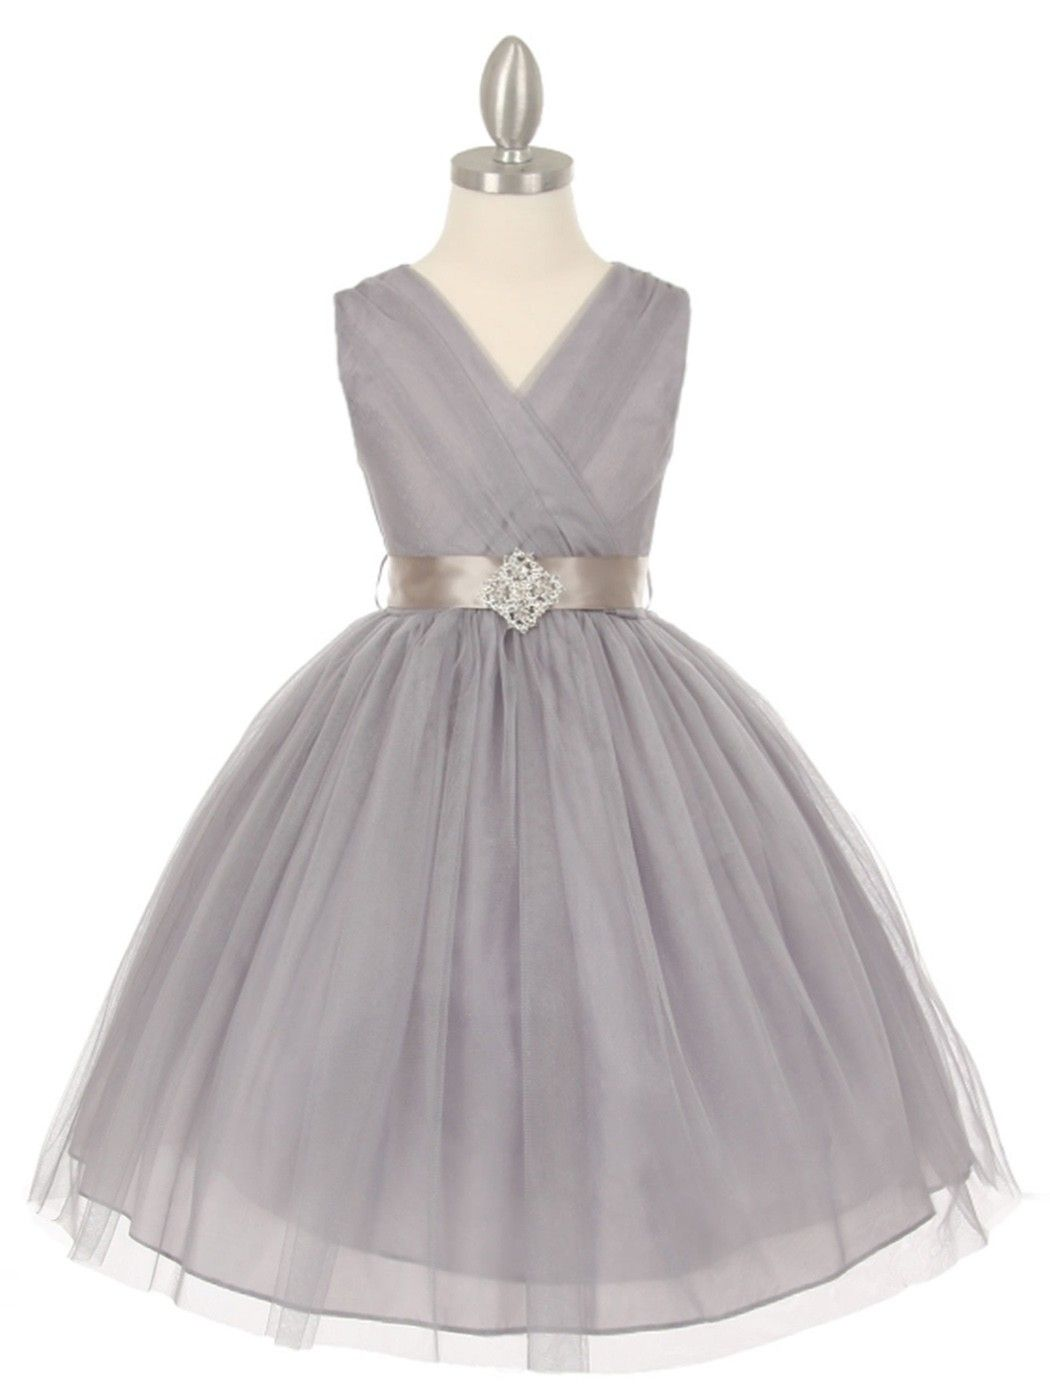 Silver Tulle V Neck with Rhinestone Brooch Flower Girl Dress Available in Si